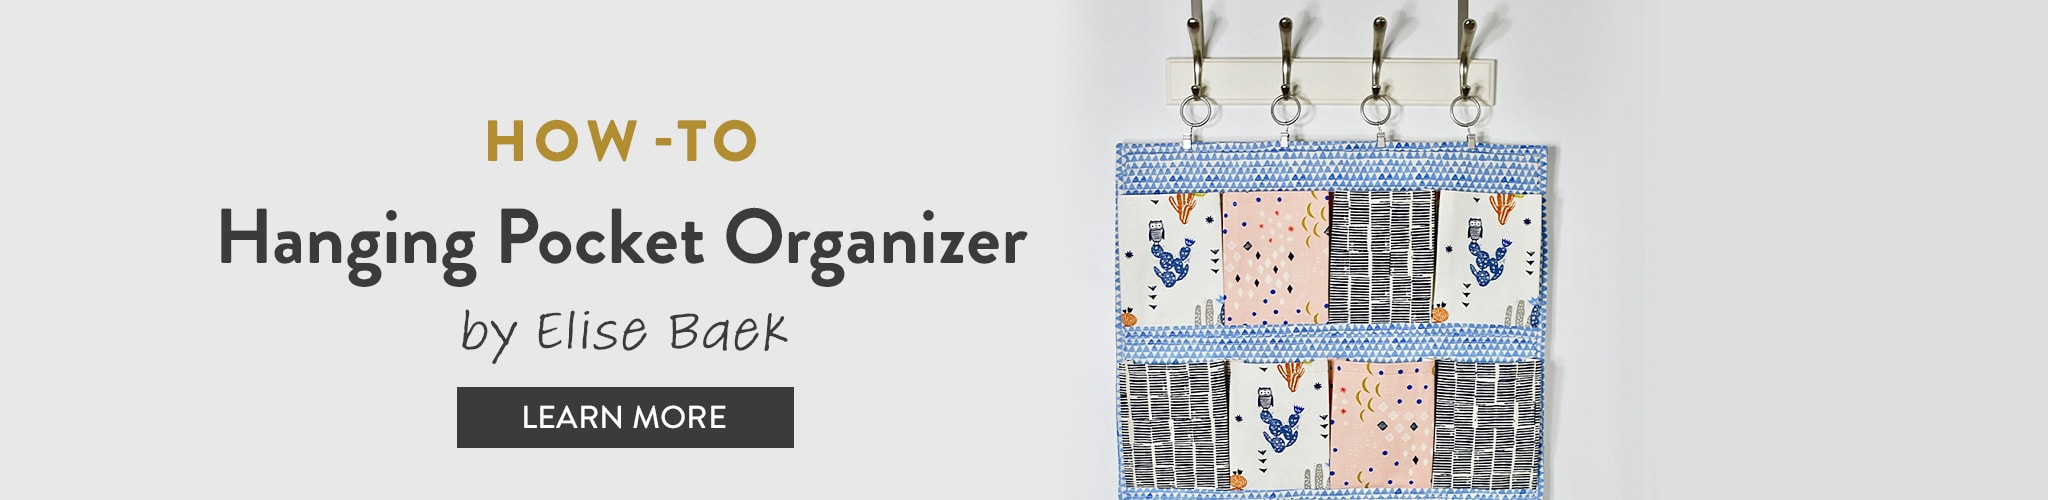 How To: Hanging Pocket Organizer